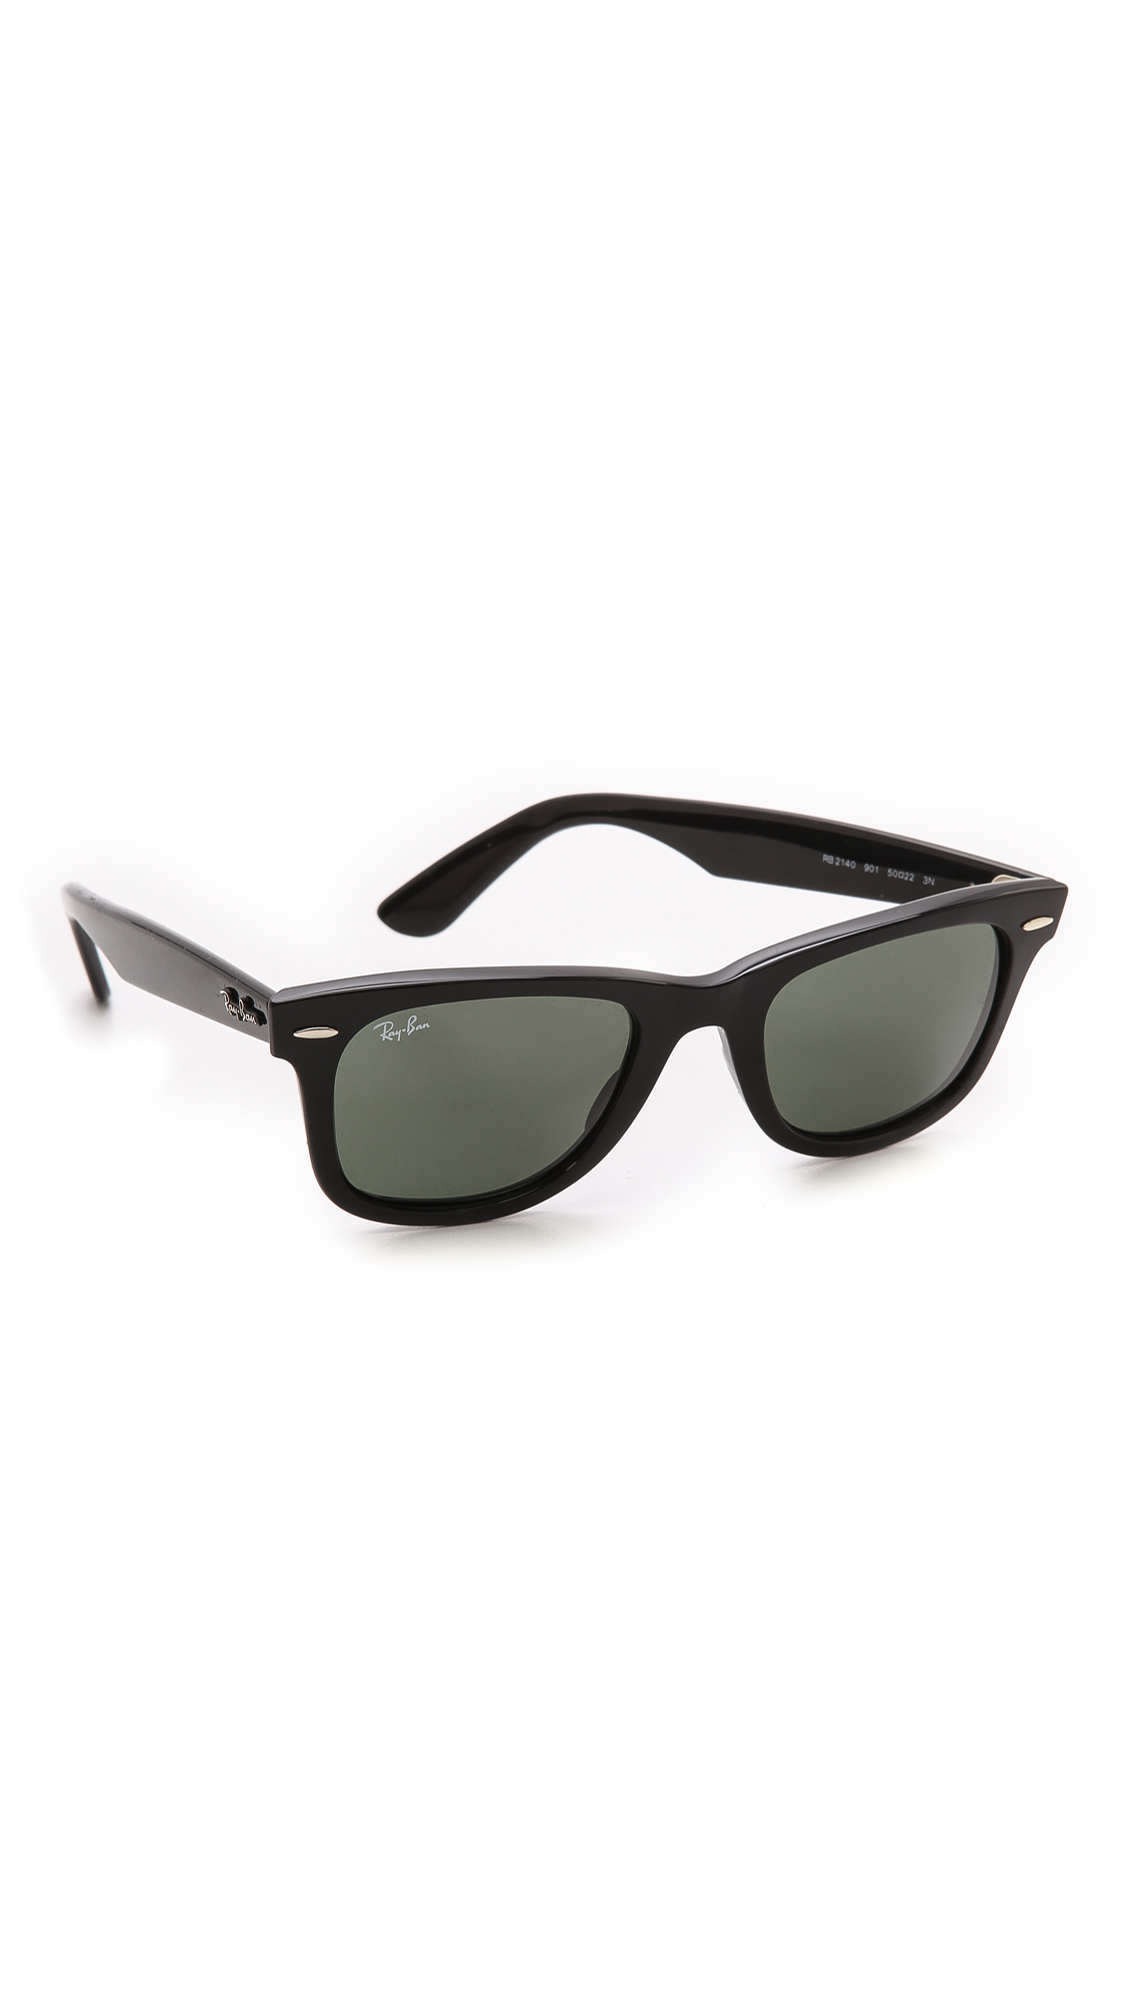 RAY BAN SMALL NEW WAYFARER 52MM SUNGLASSES - BLACK RUBBER/ CRYSTAL ...